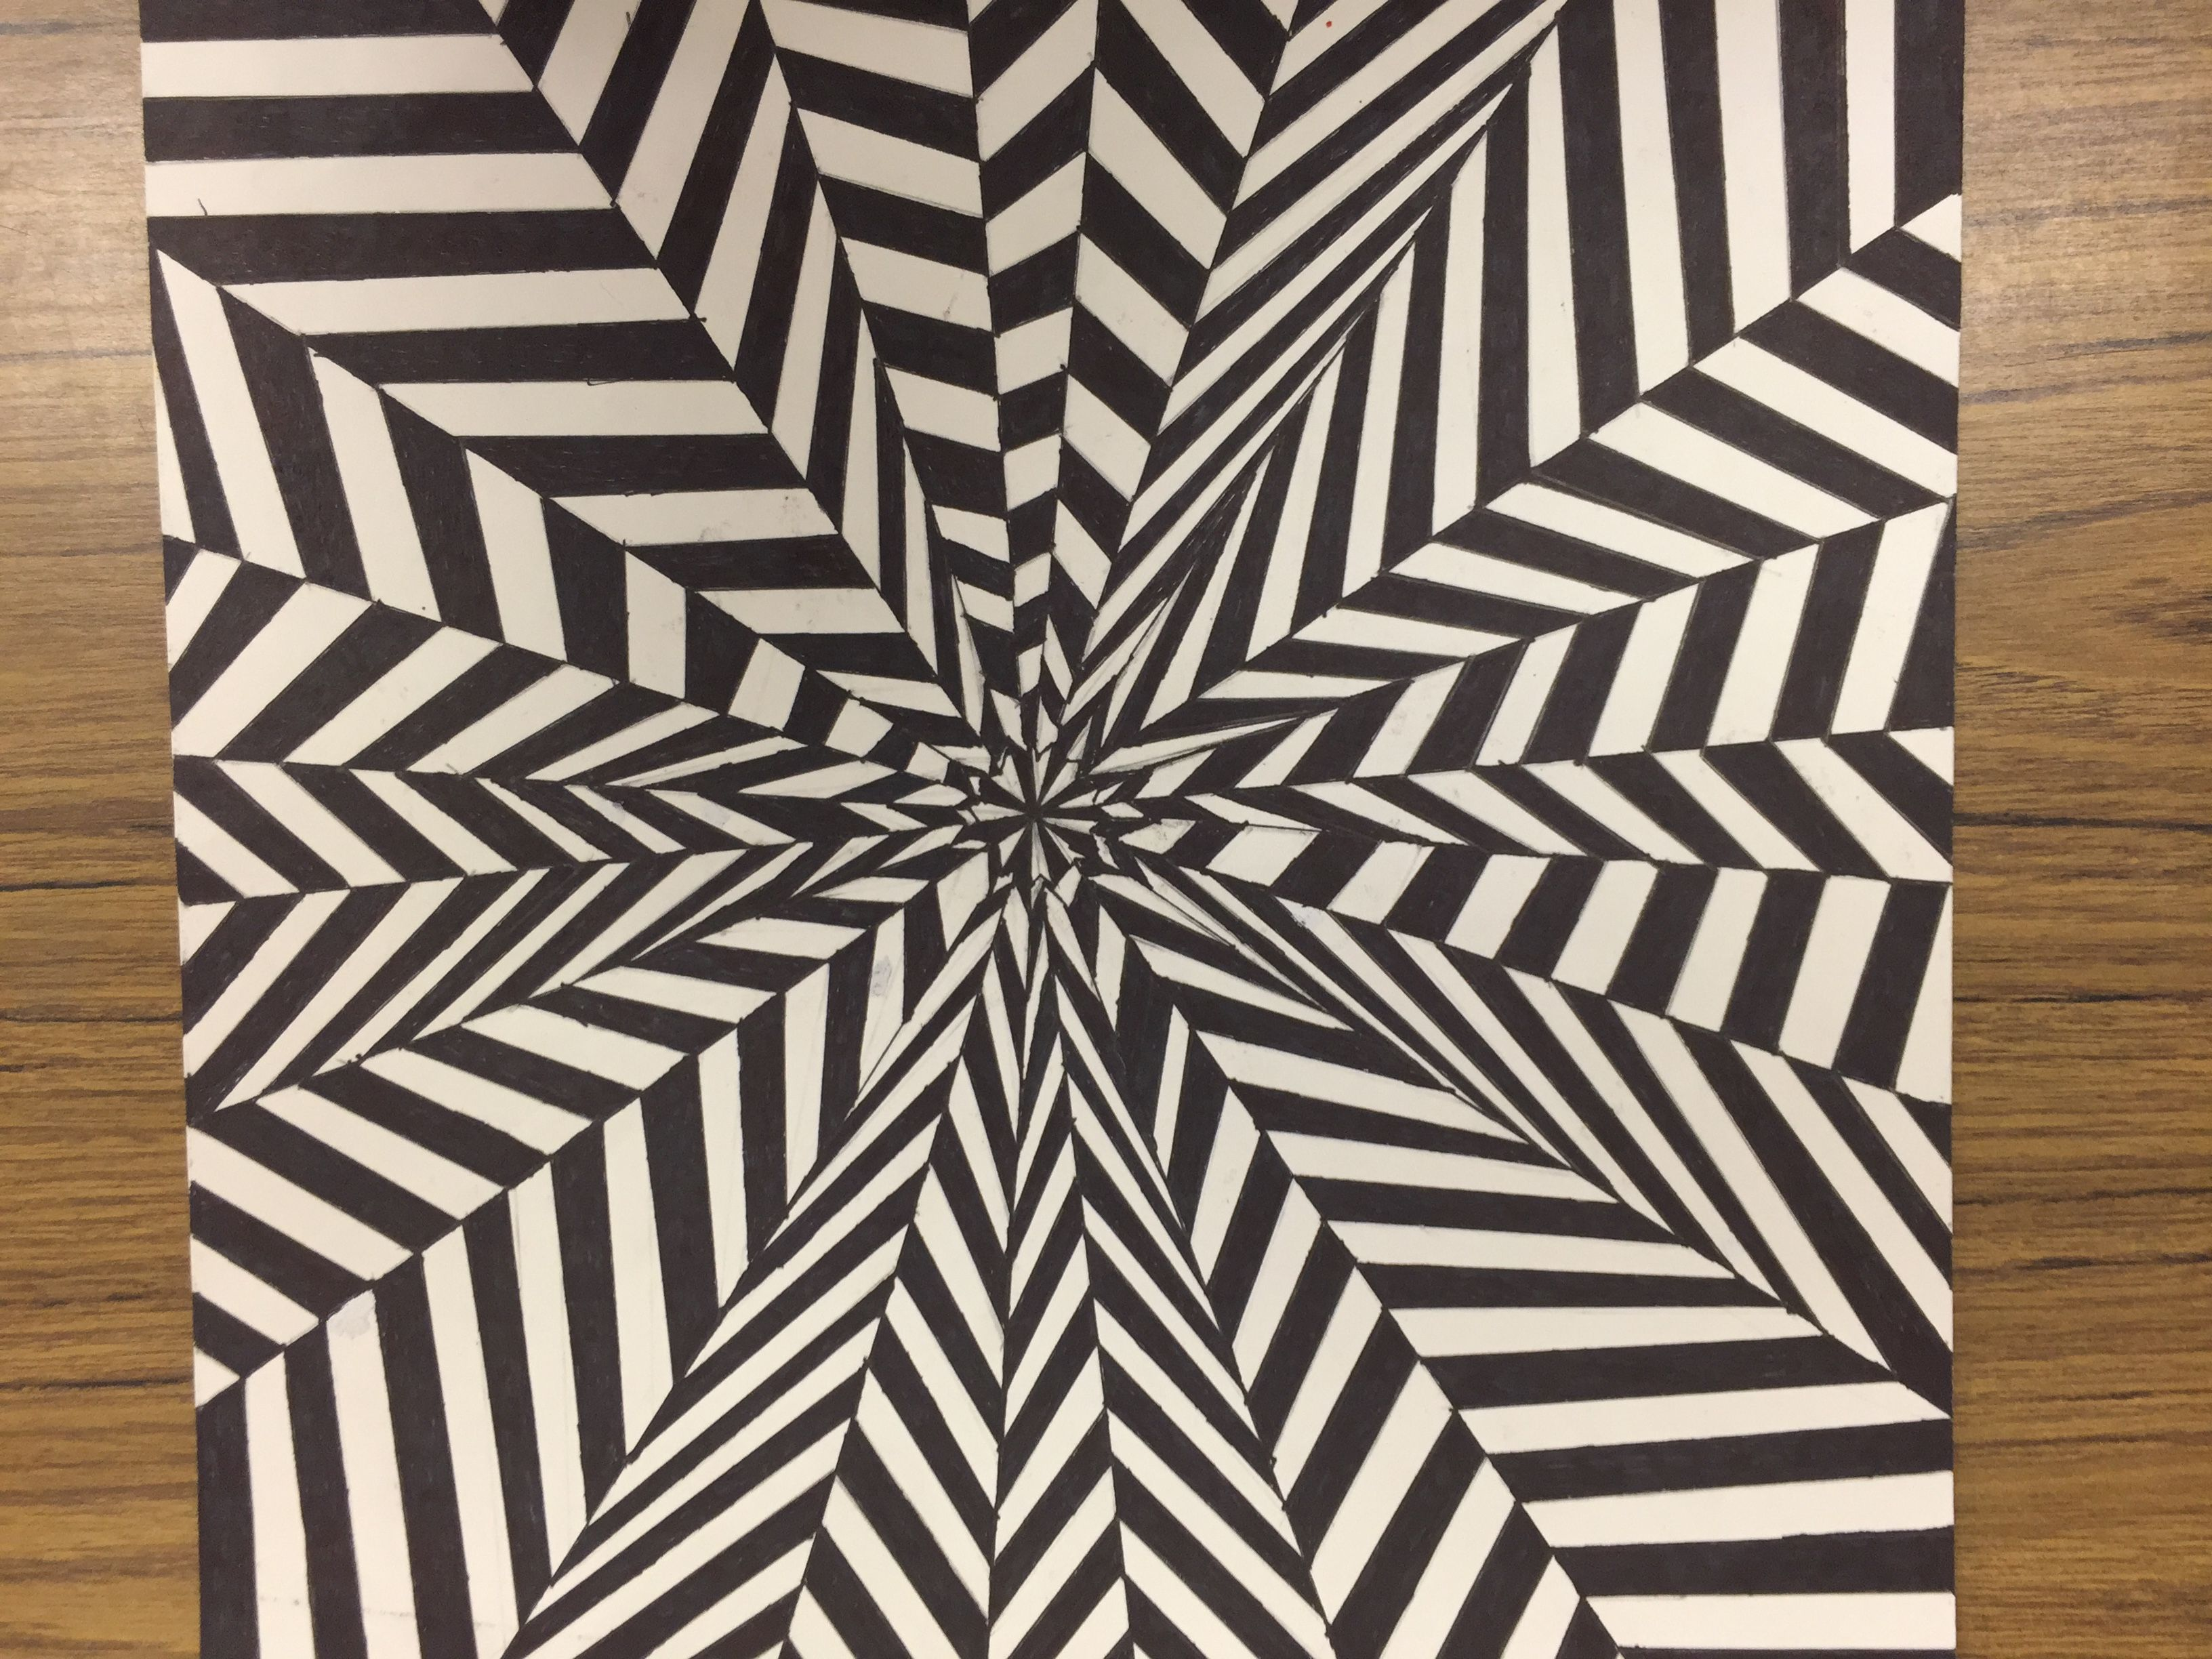 How To Draw An Optical Illusion 2019 2020 Op Art Lessons